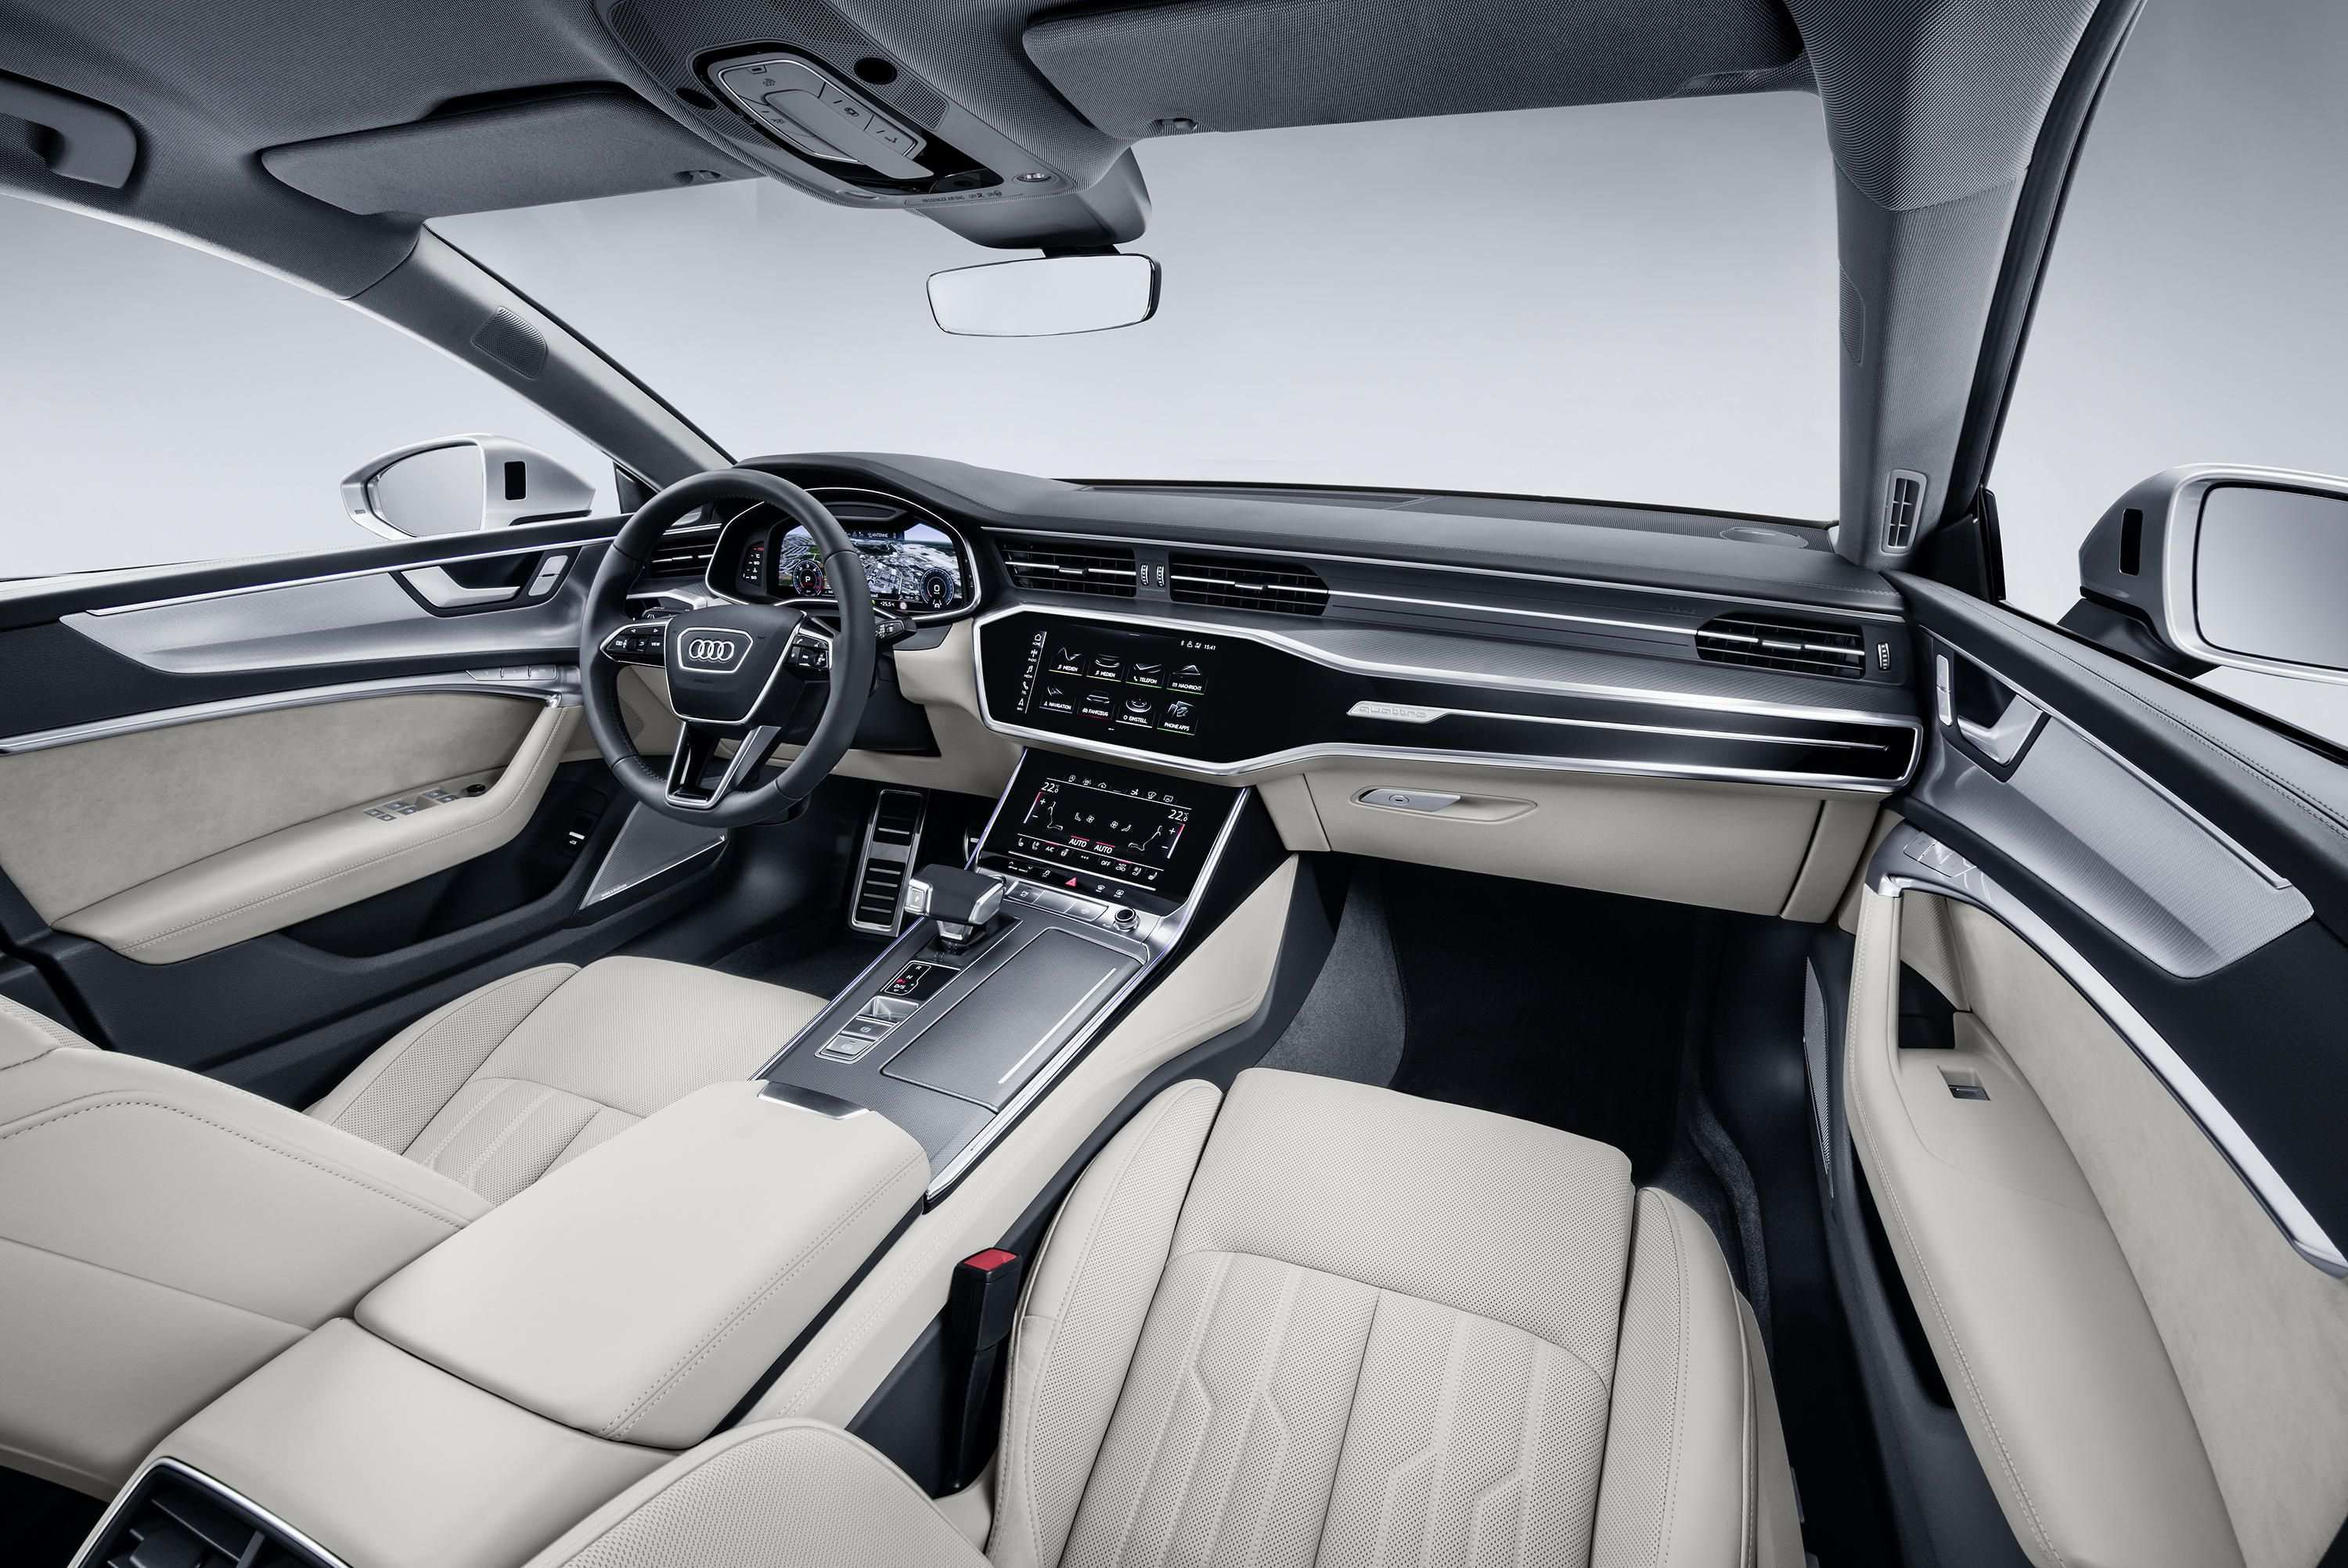 34 New 2019 Audi A7 Interior Reviews with 2019 Audi A7 Interior